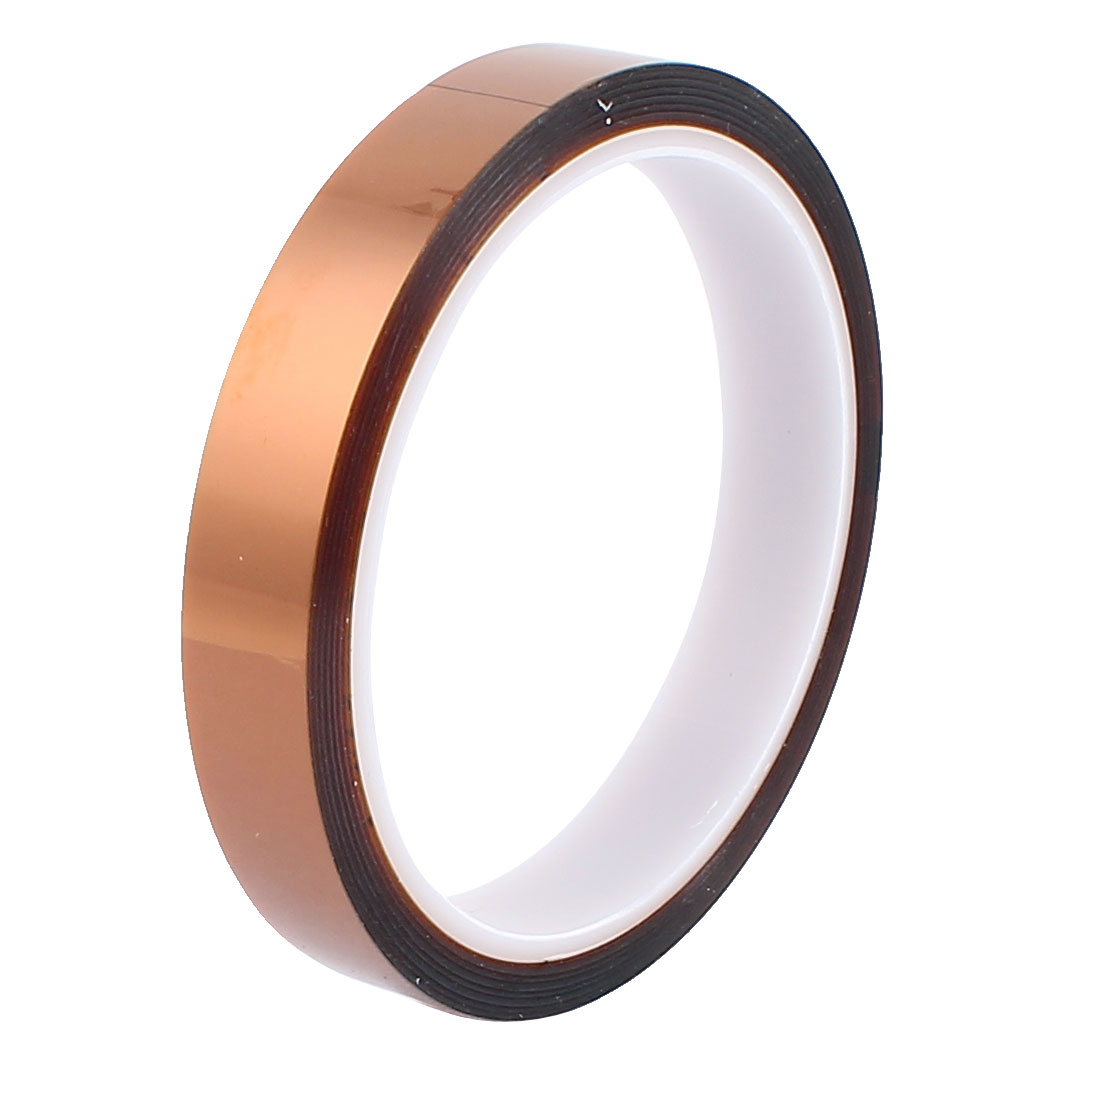 1.5CM Width 33M Long Heat Resistant Tape High Temperature Polyimide